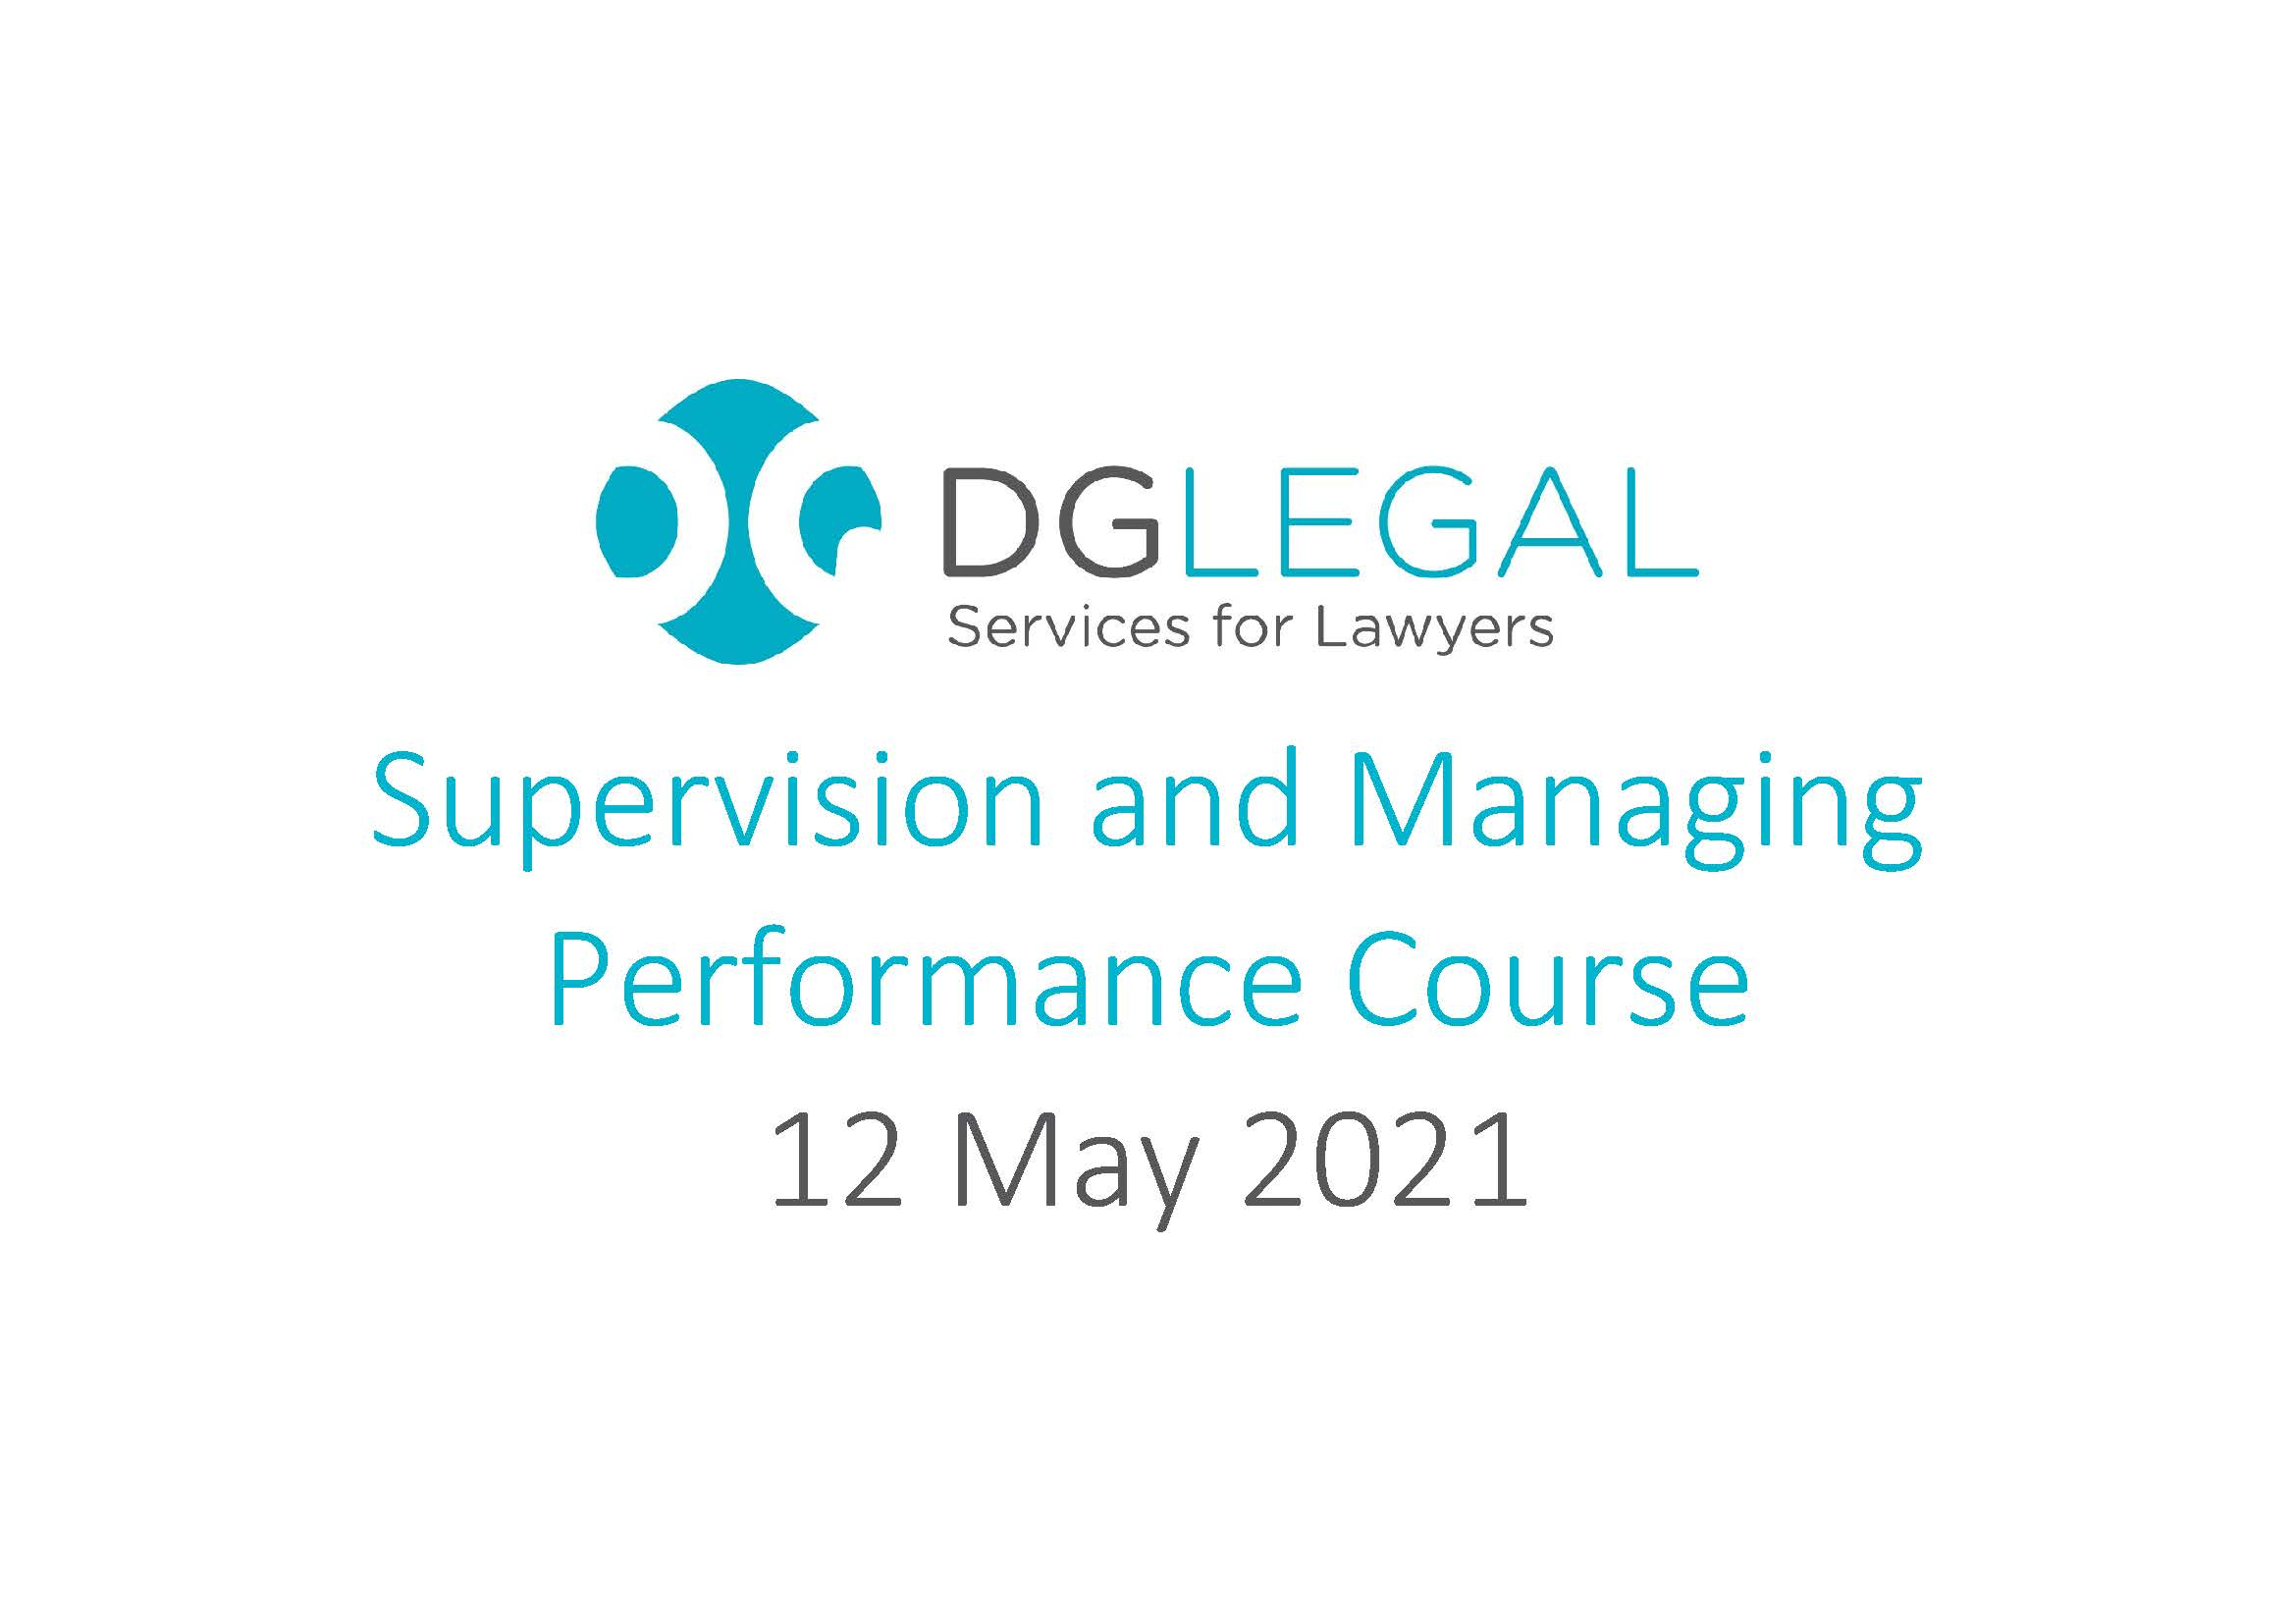 12.05.2021 - Supervision and Managing Performance Course